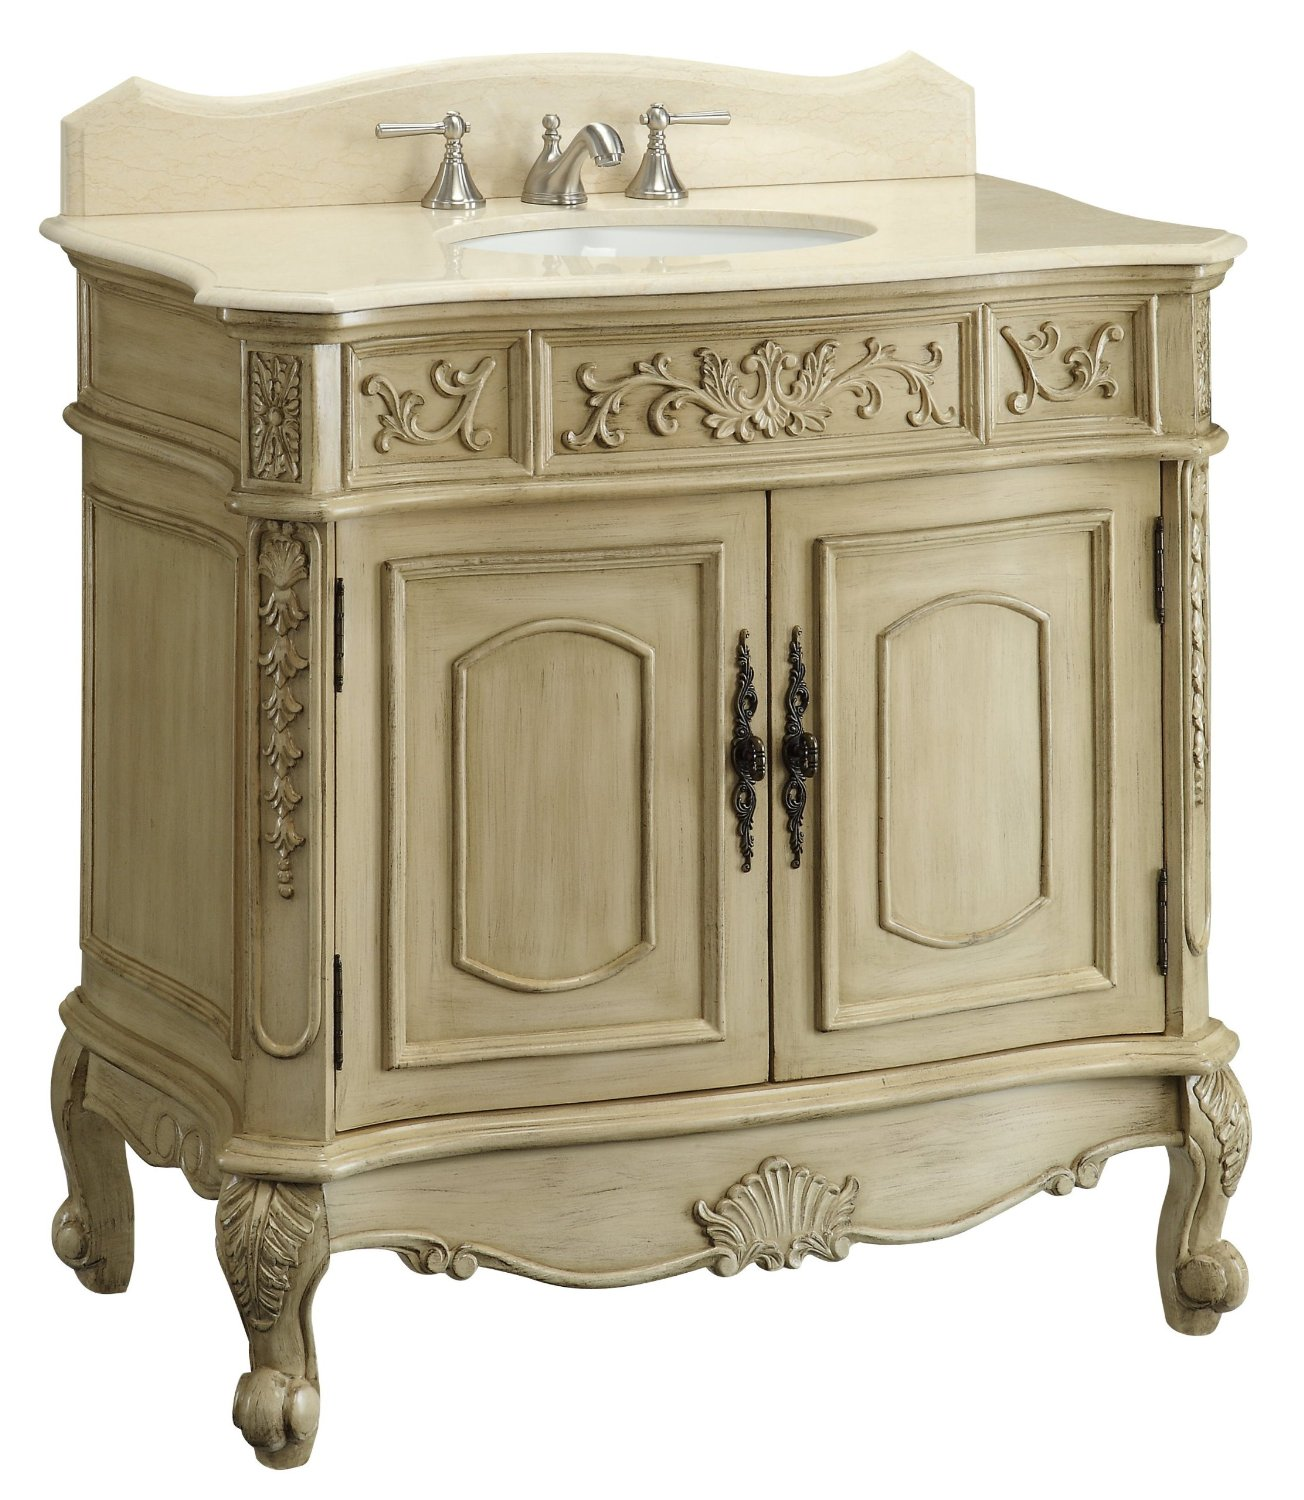 Adelina Inch Unique Antique Bathroom Vanity White Marble